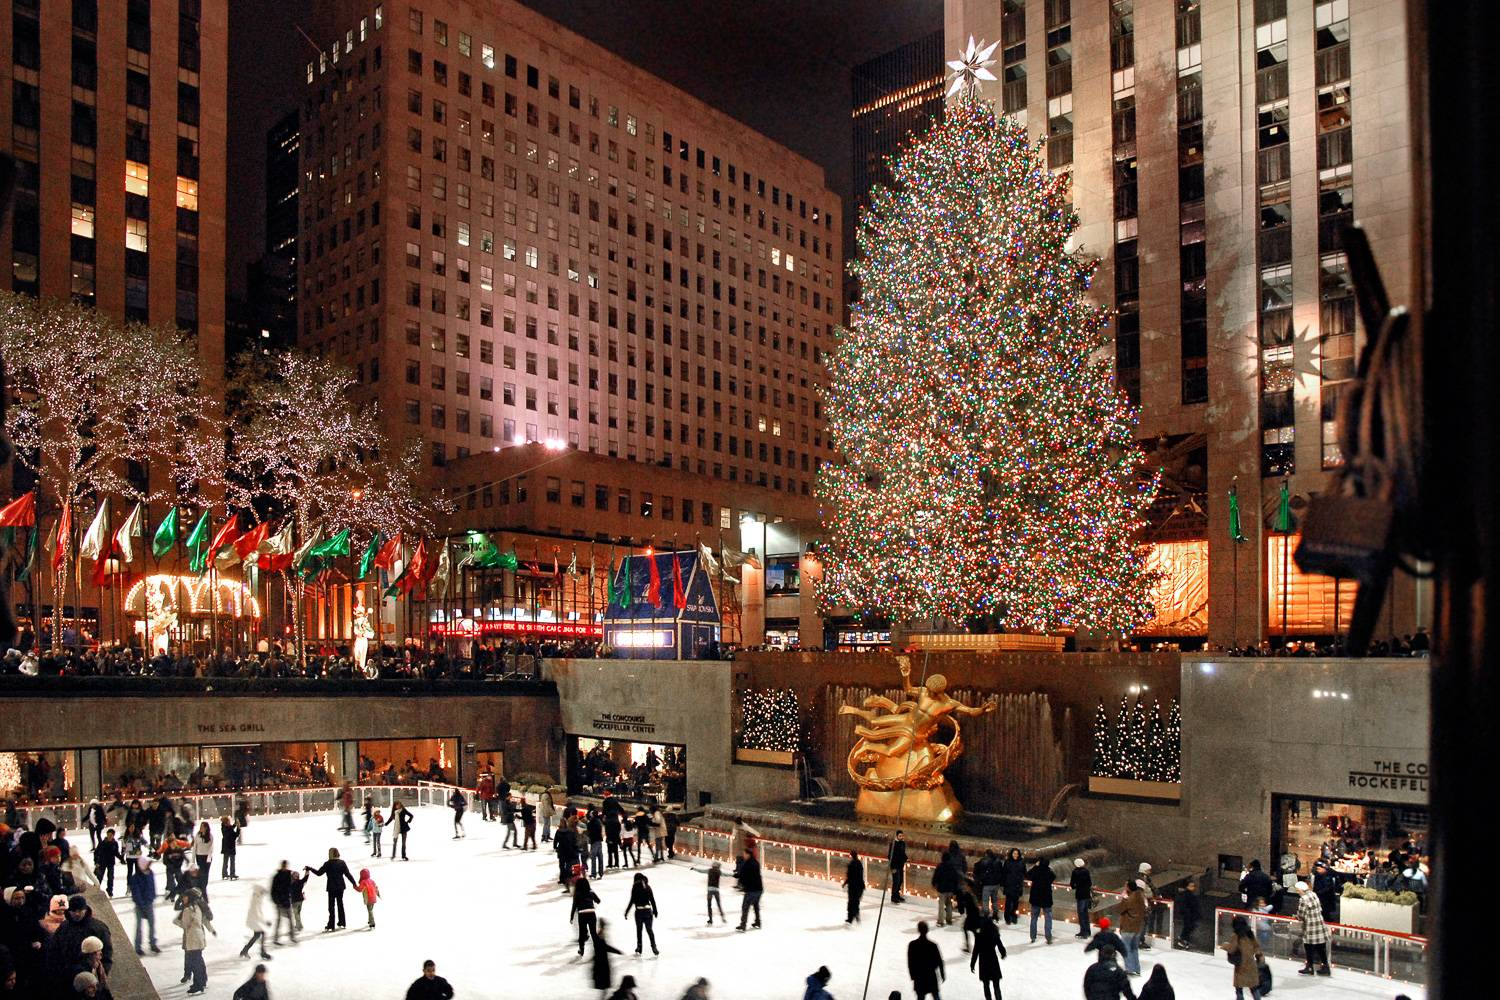 Image of Rockefeller Center ice rink at Christmas time